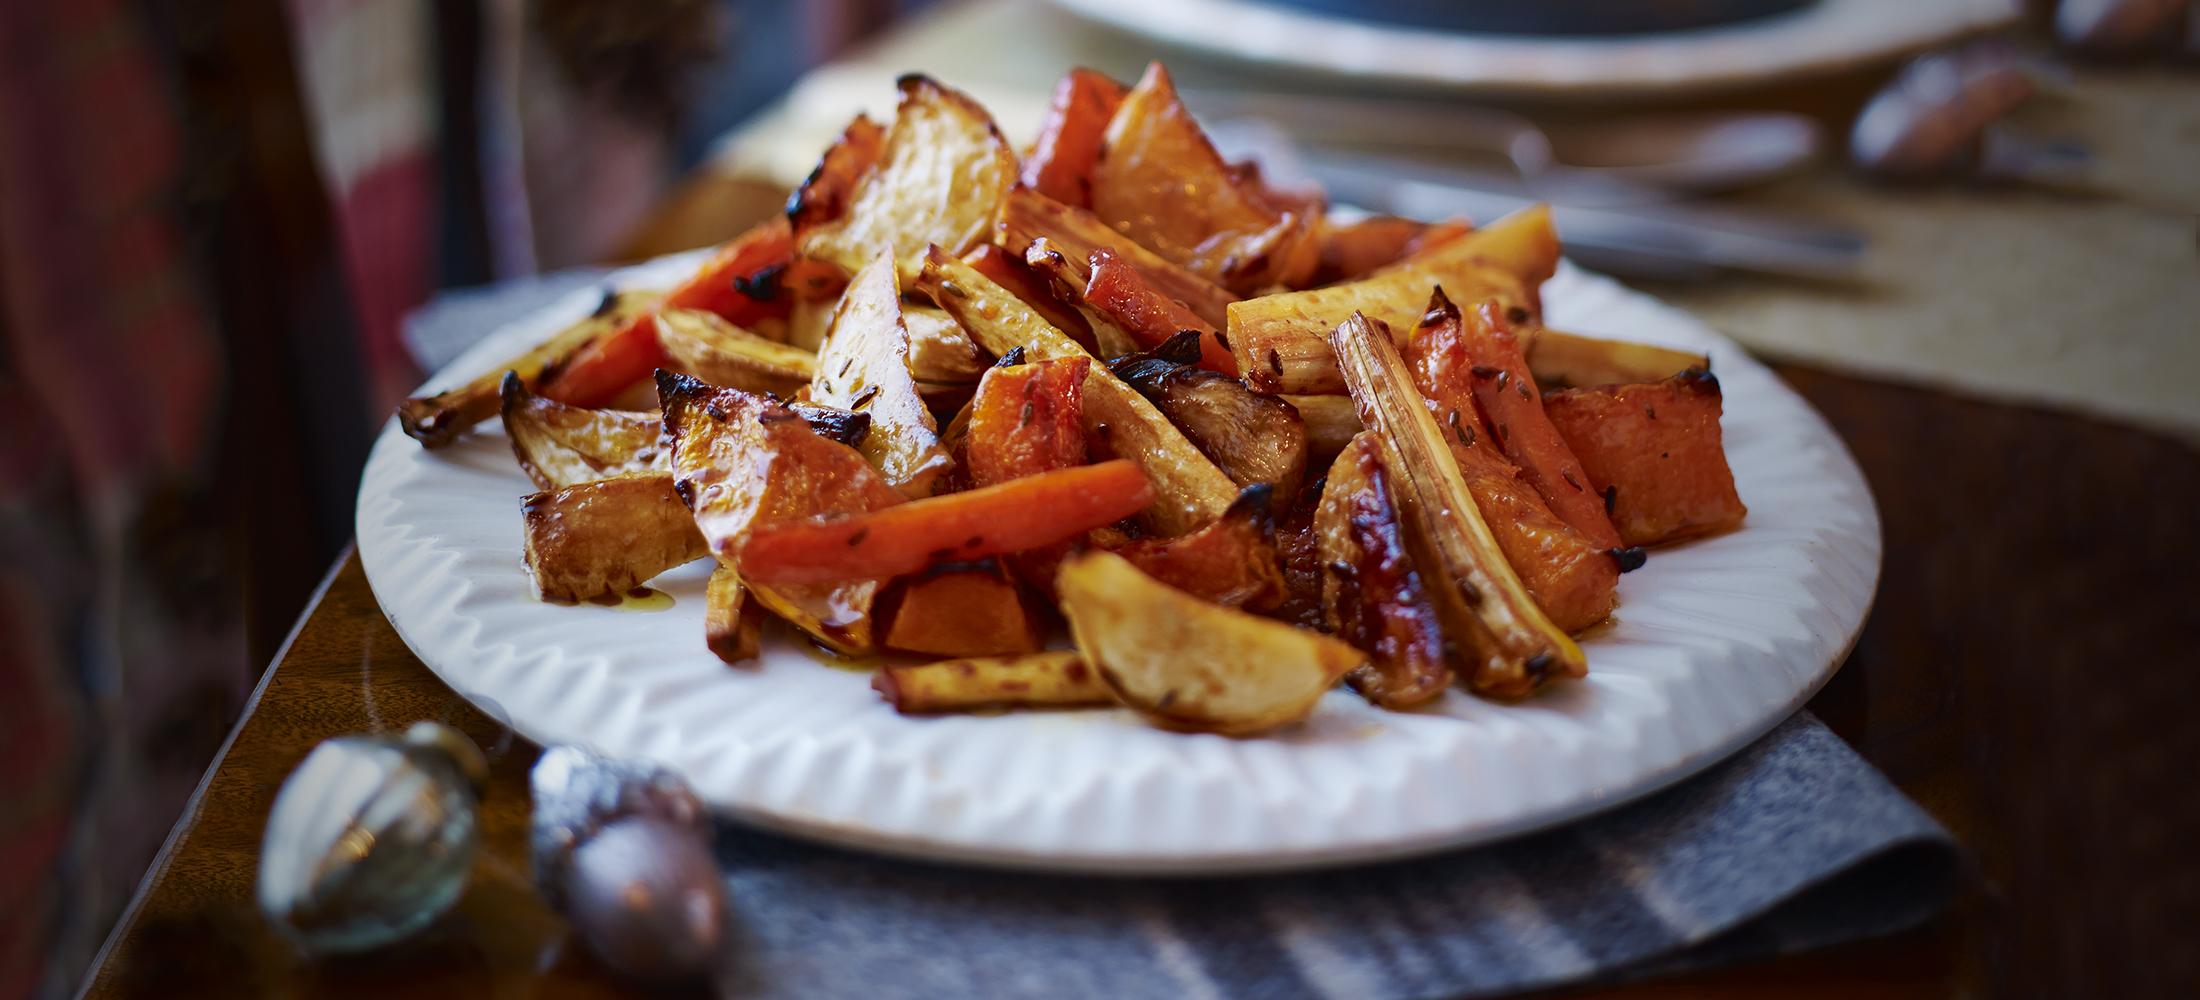 Roast roots with pomegranate molasses